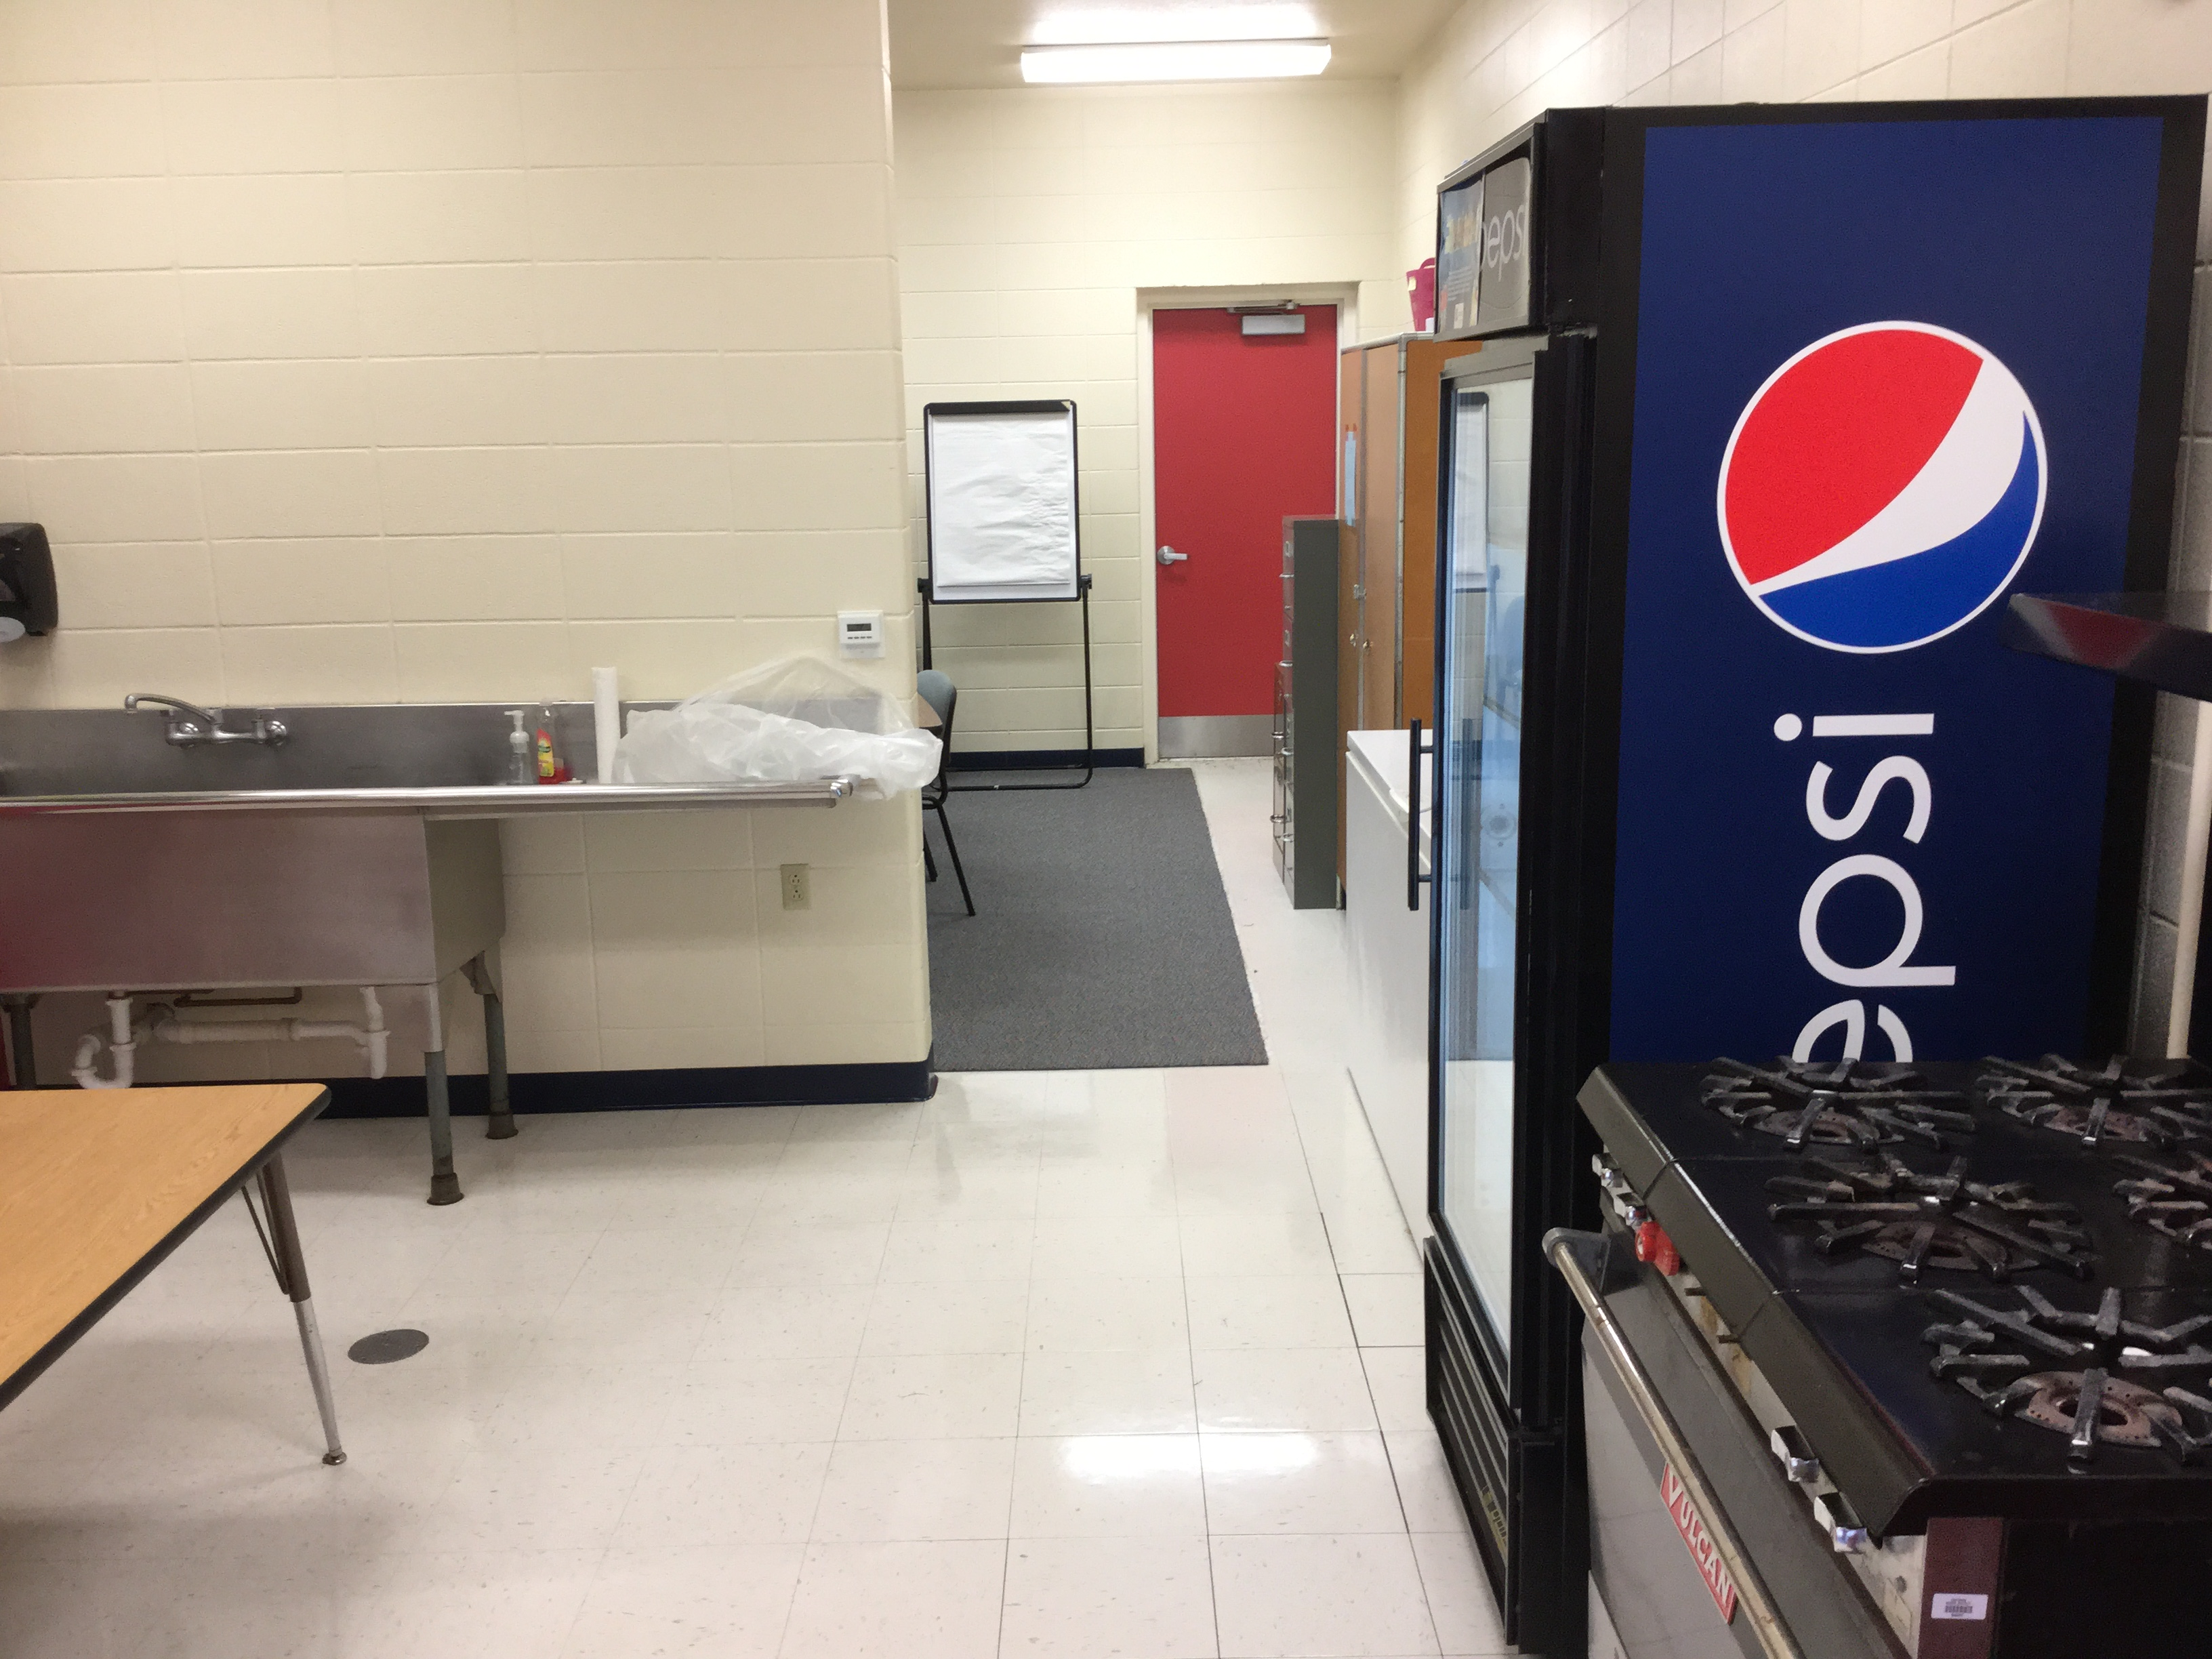 Conference Room / Concession Stand